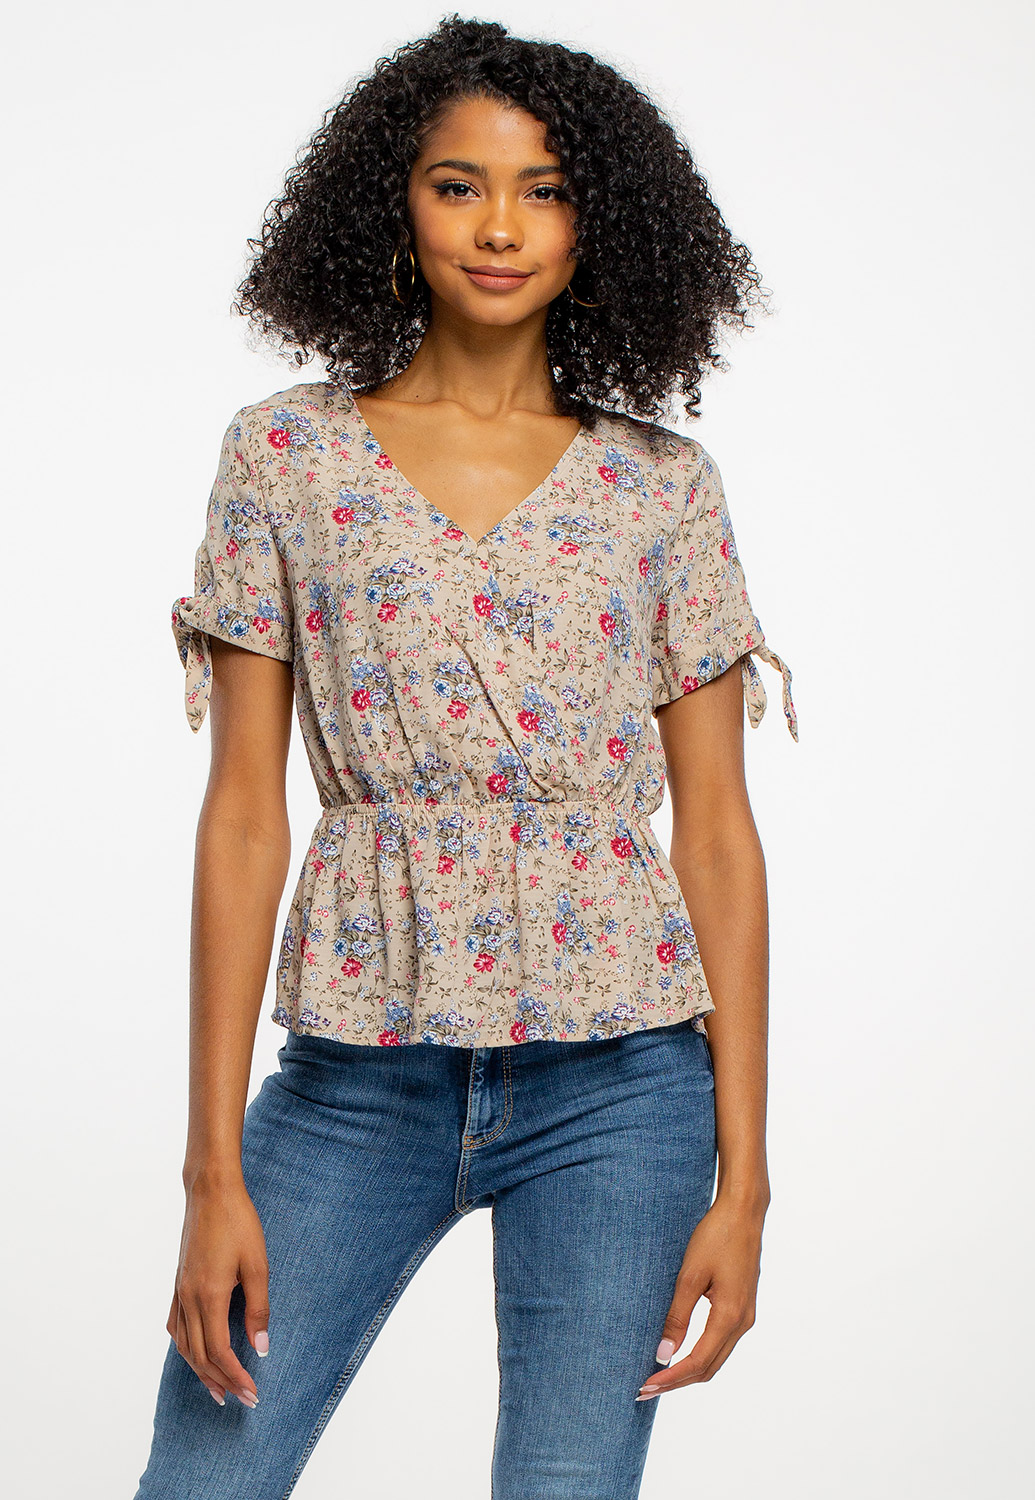 Floral Blouse With Tie Sleeve Details